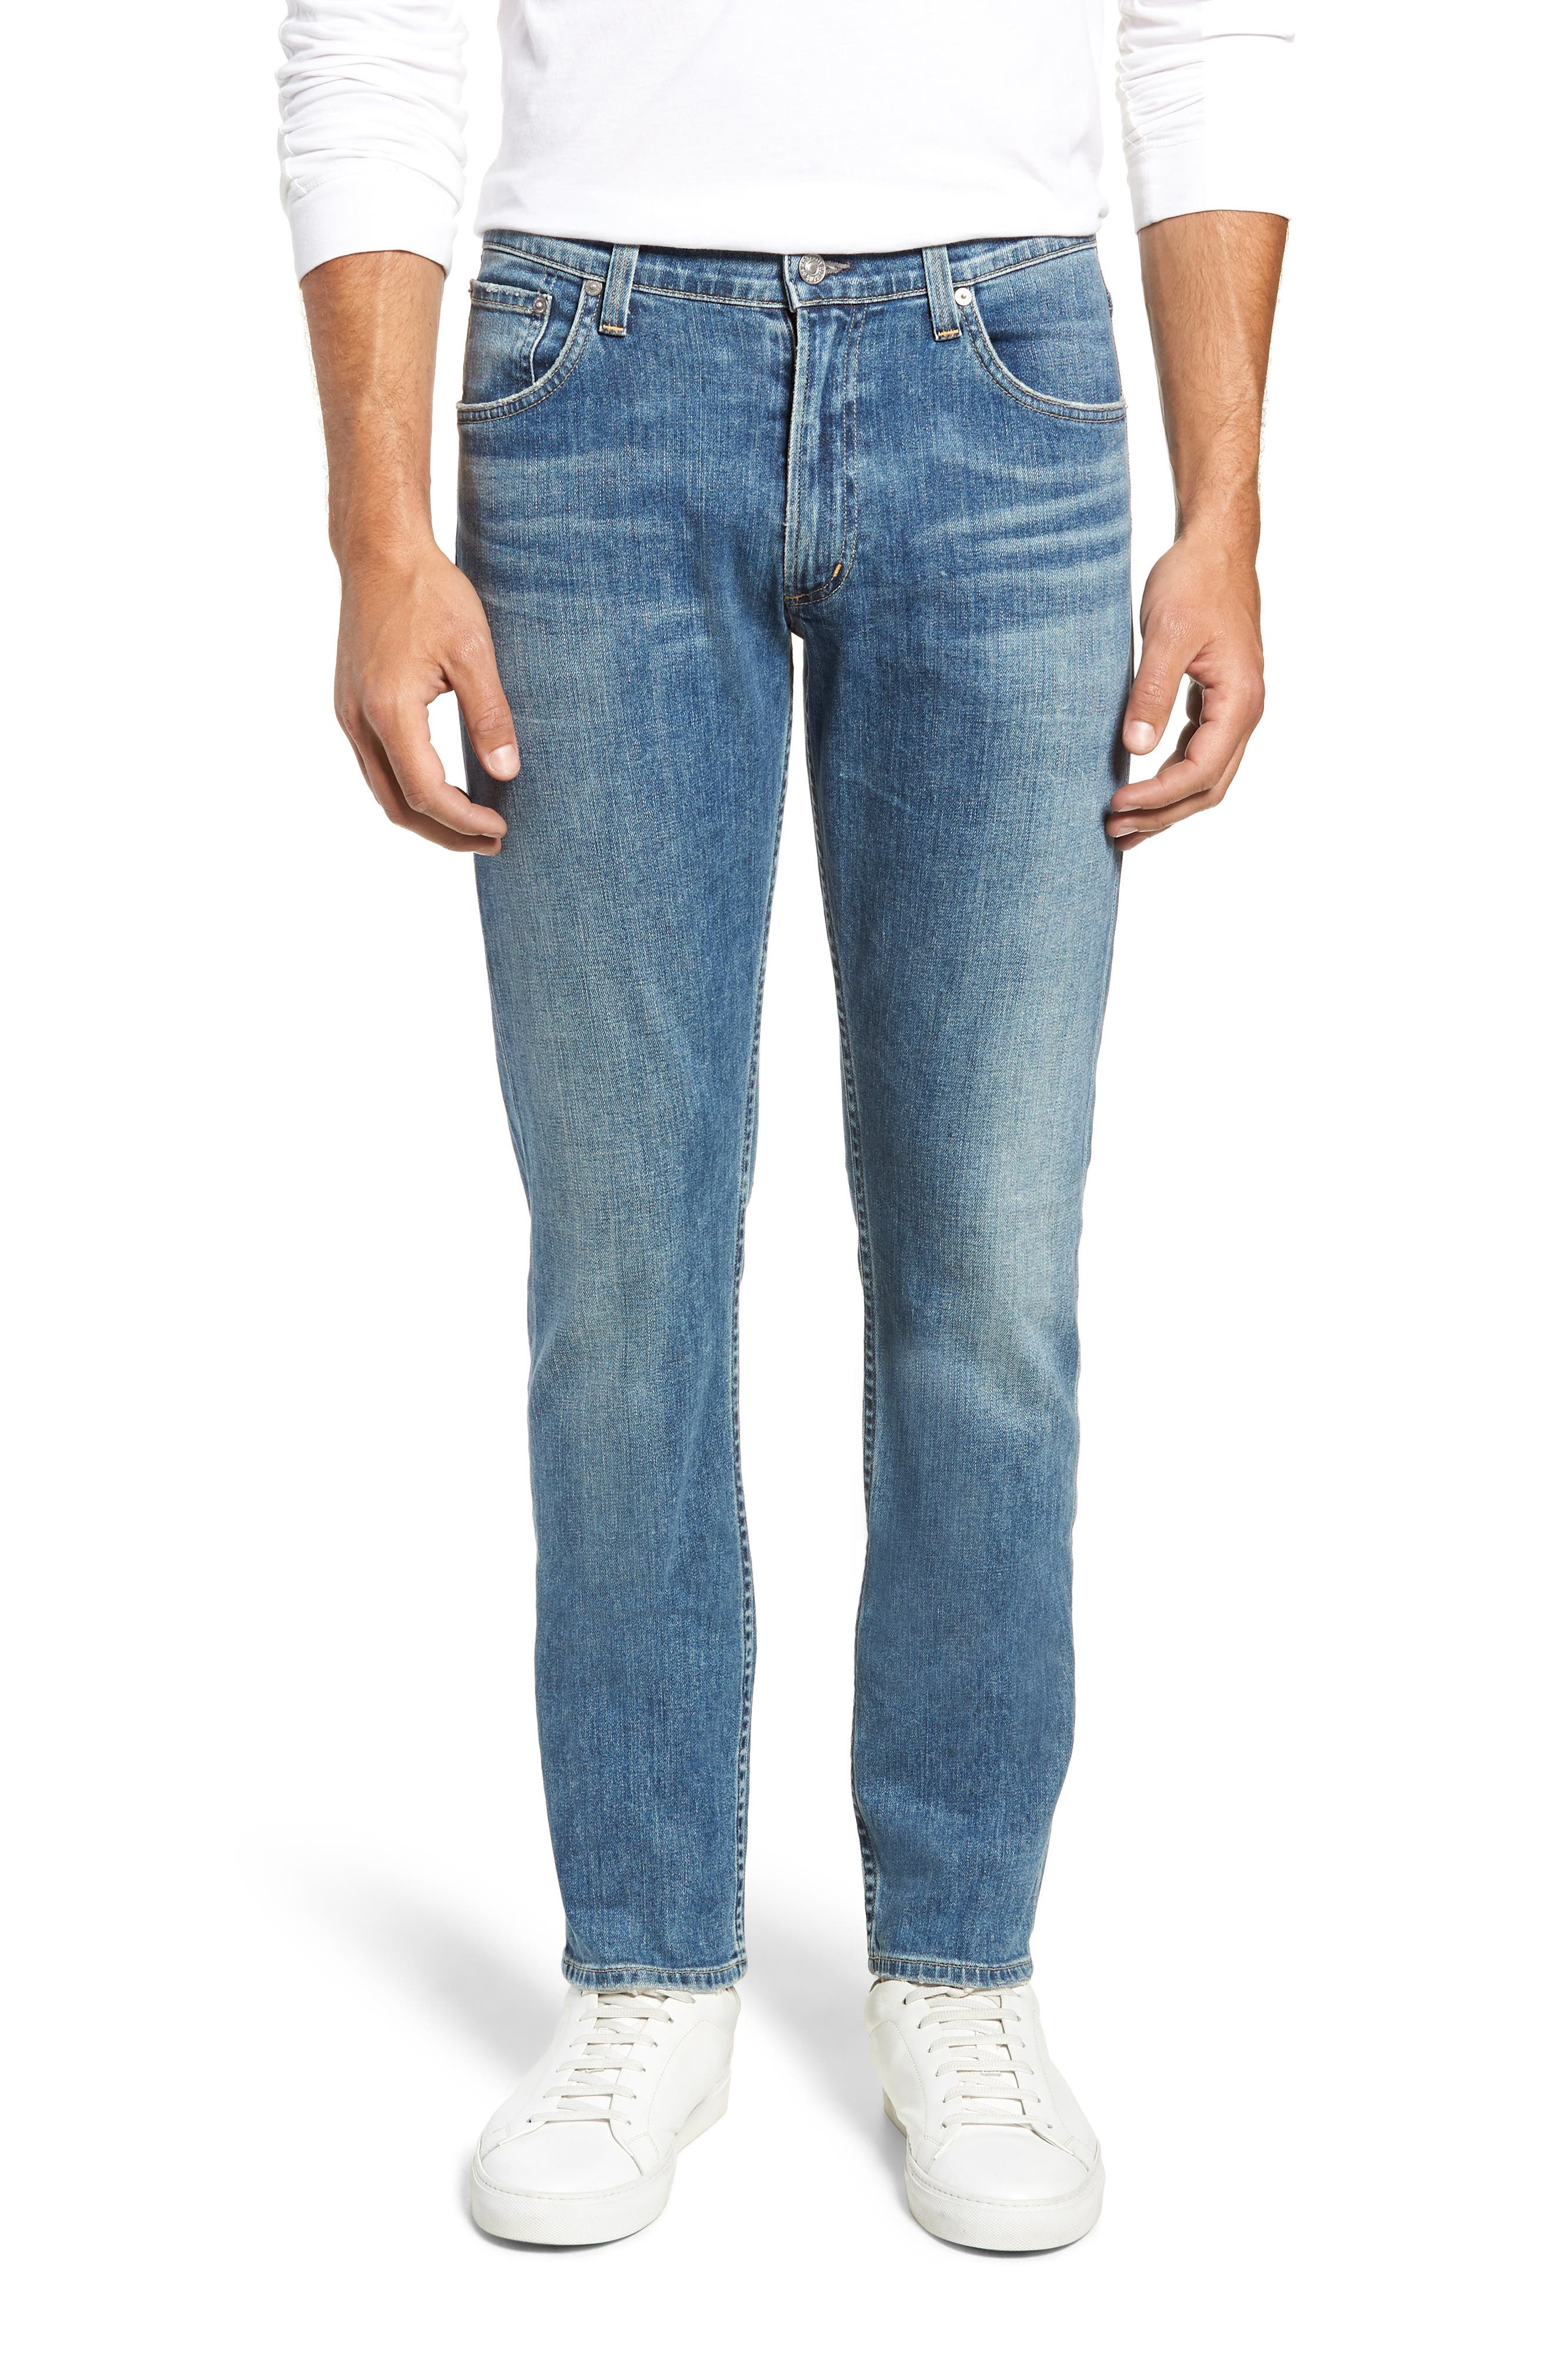 Bowery Slim Fit Jeans,                         Main,                         color, ALAND